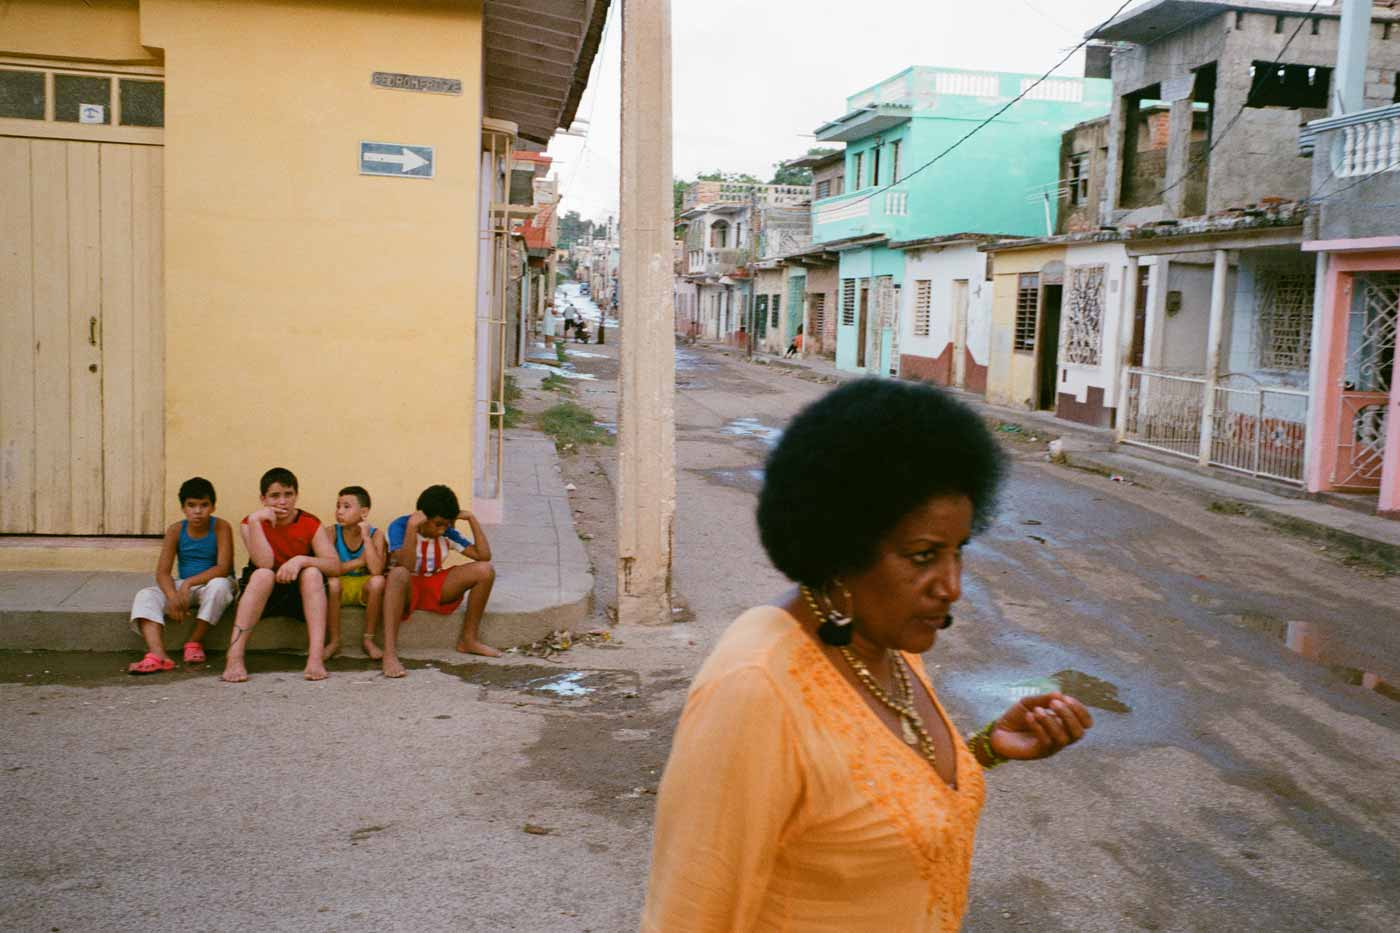 35mm-focal-length-guide-tips-beginner-documentary-story-telling-zone-focus-field-view-perspective-compression-angle-summilux-cuba-havana-film-photography-kids-woman